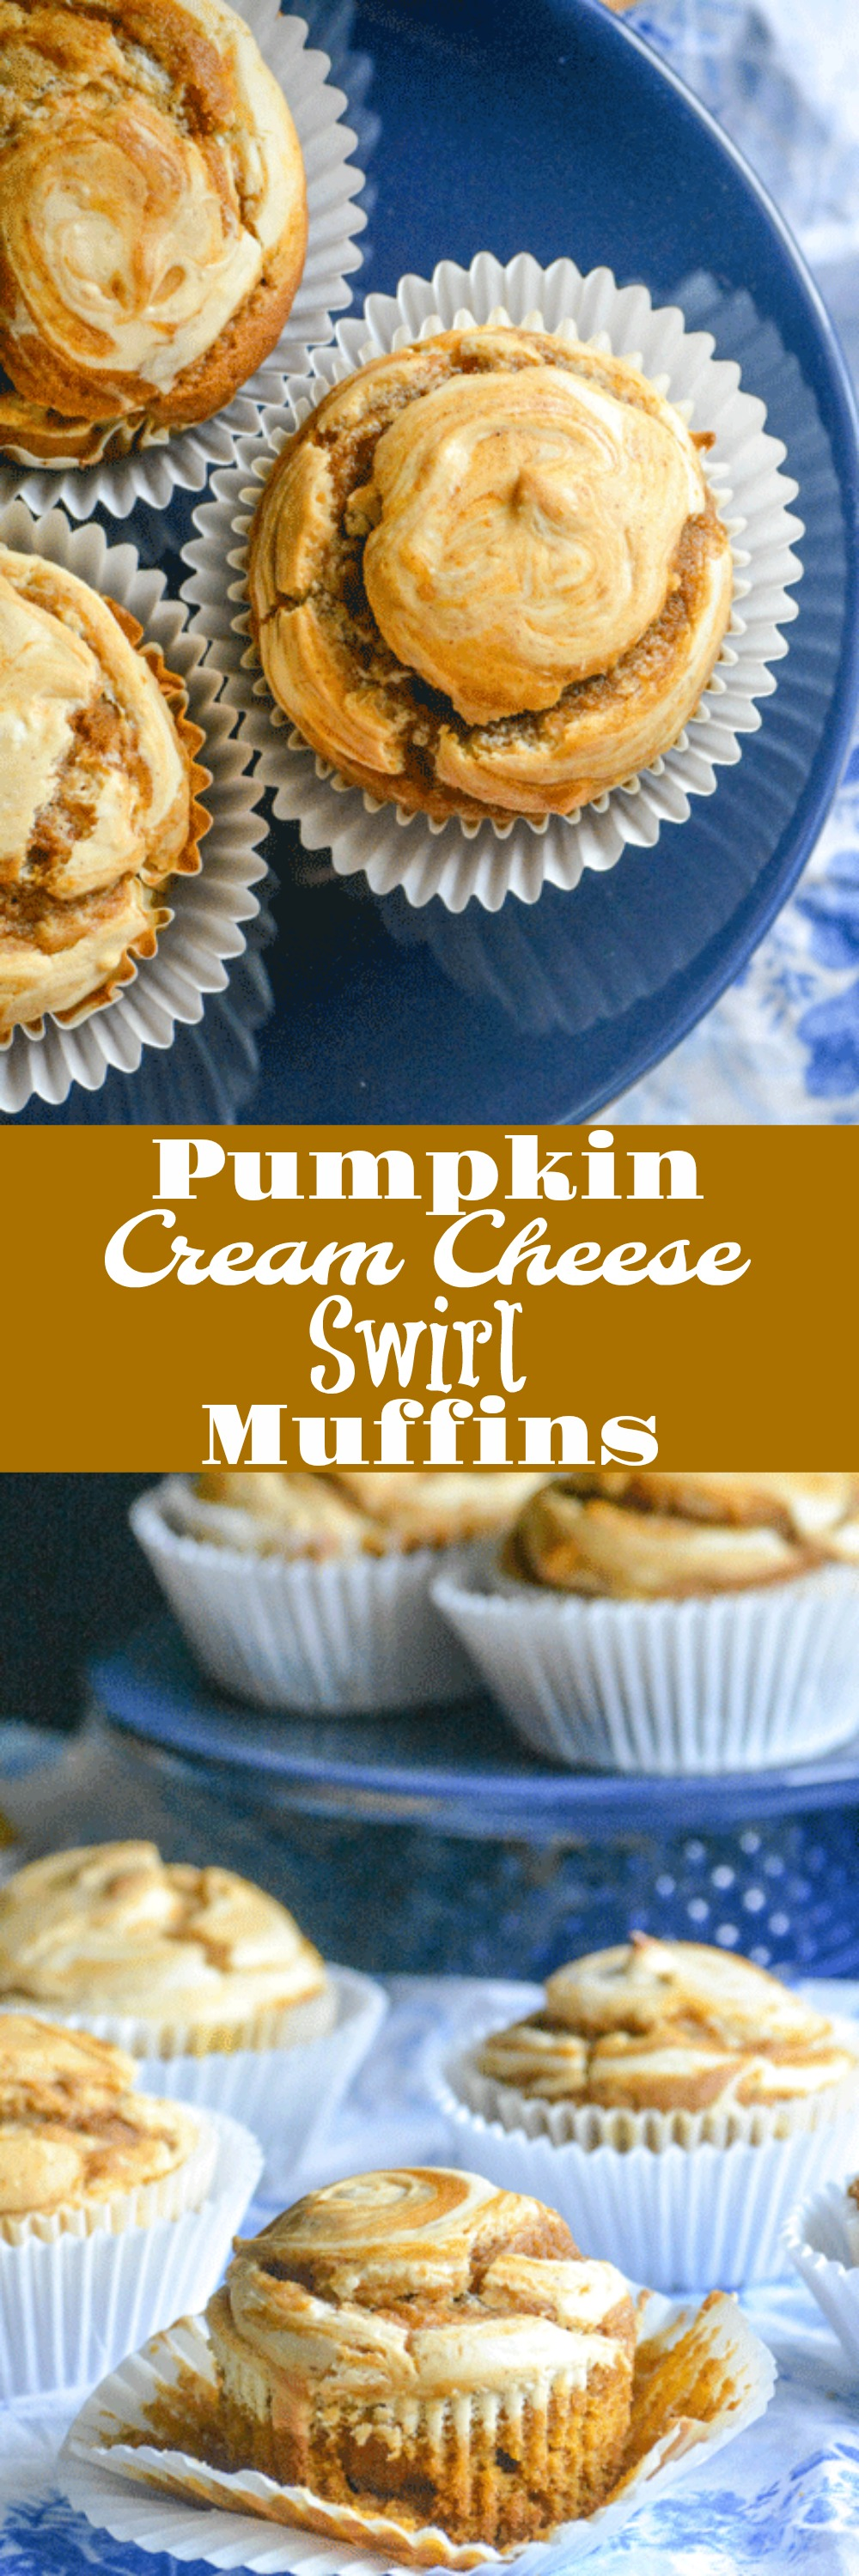 Cupcakes are a no brainer for dessert, but what if I told you you could have a breakfast muffin that tasted like a lightly frosted cupcake? These Pumpkin Cream Cheese Swirl Muffins leave you lickin' your fingers for crumbs with their sweet pumpkin pie spiced selves and a creamy, melt in your mouth cream cheese swirl.